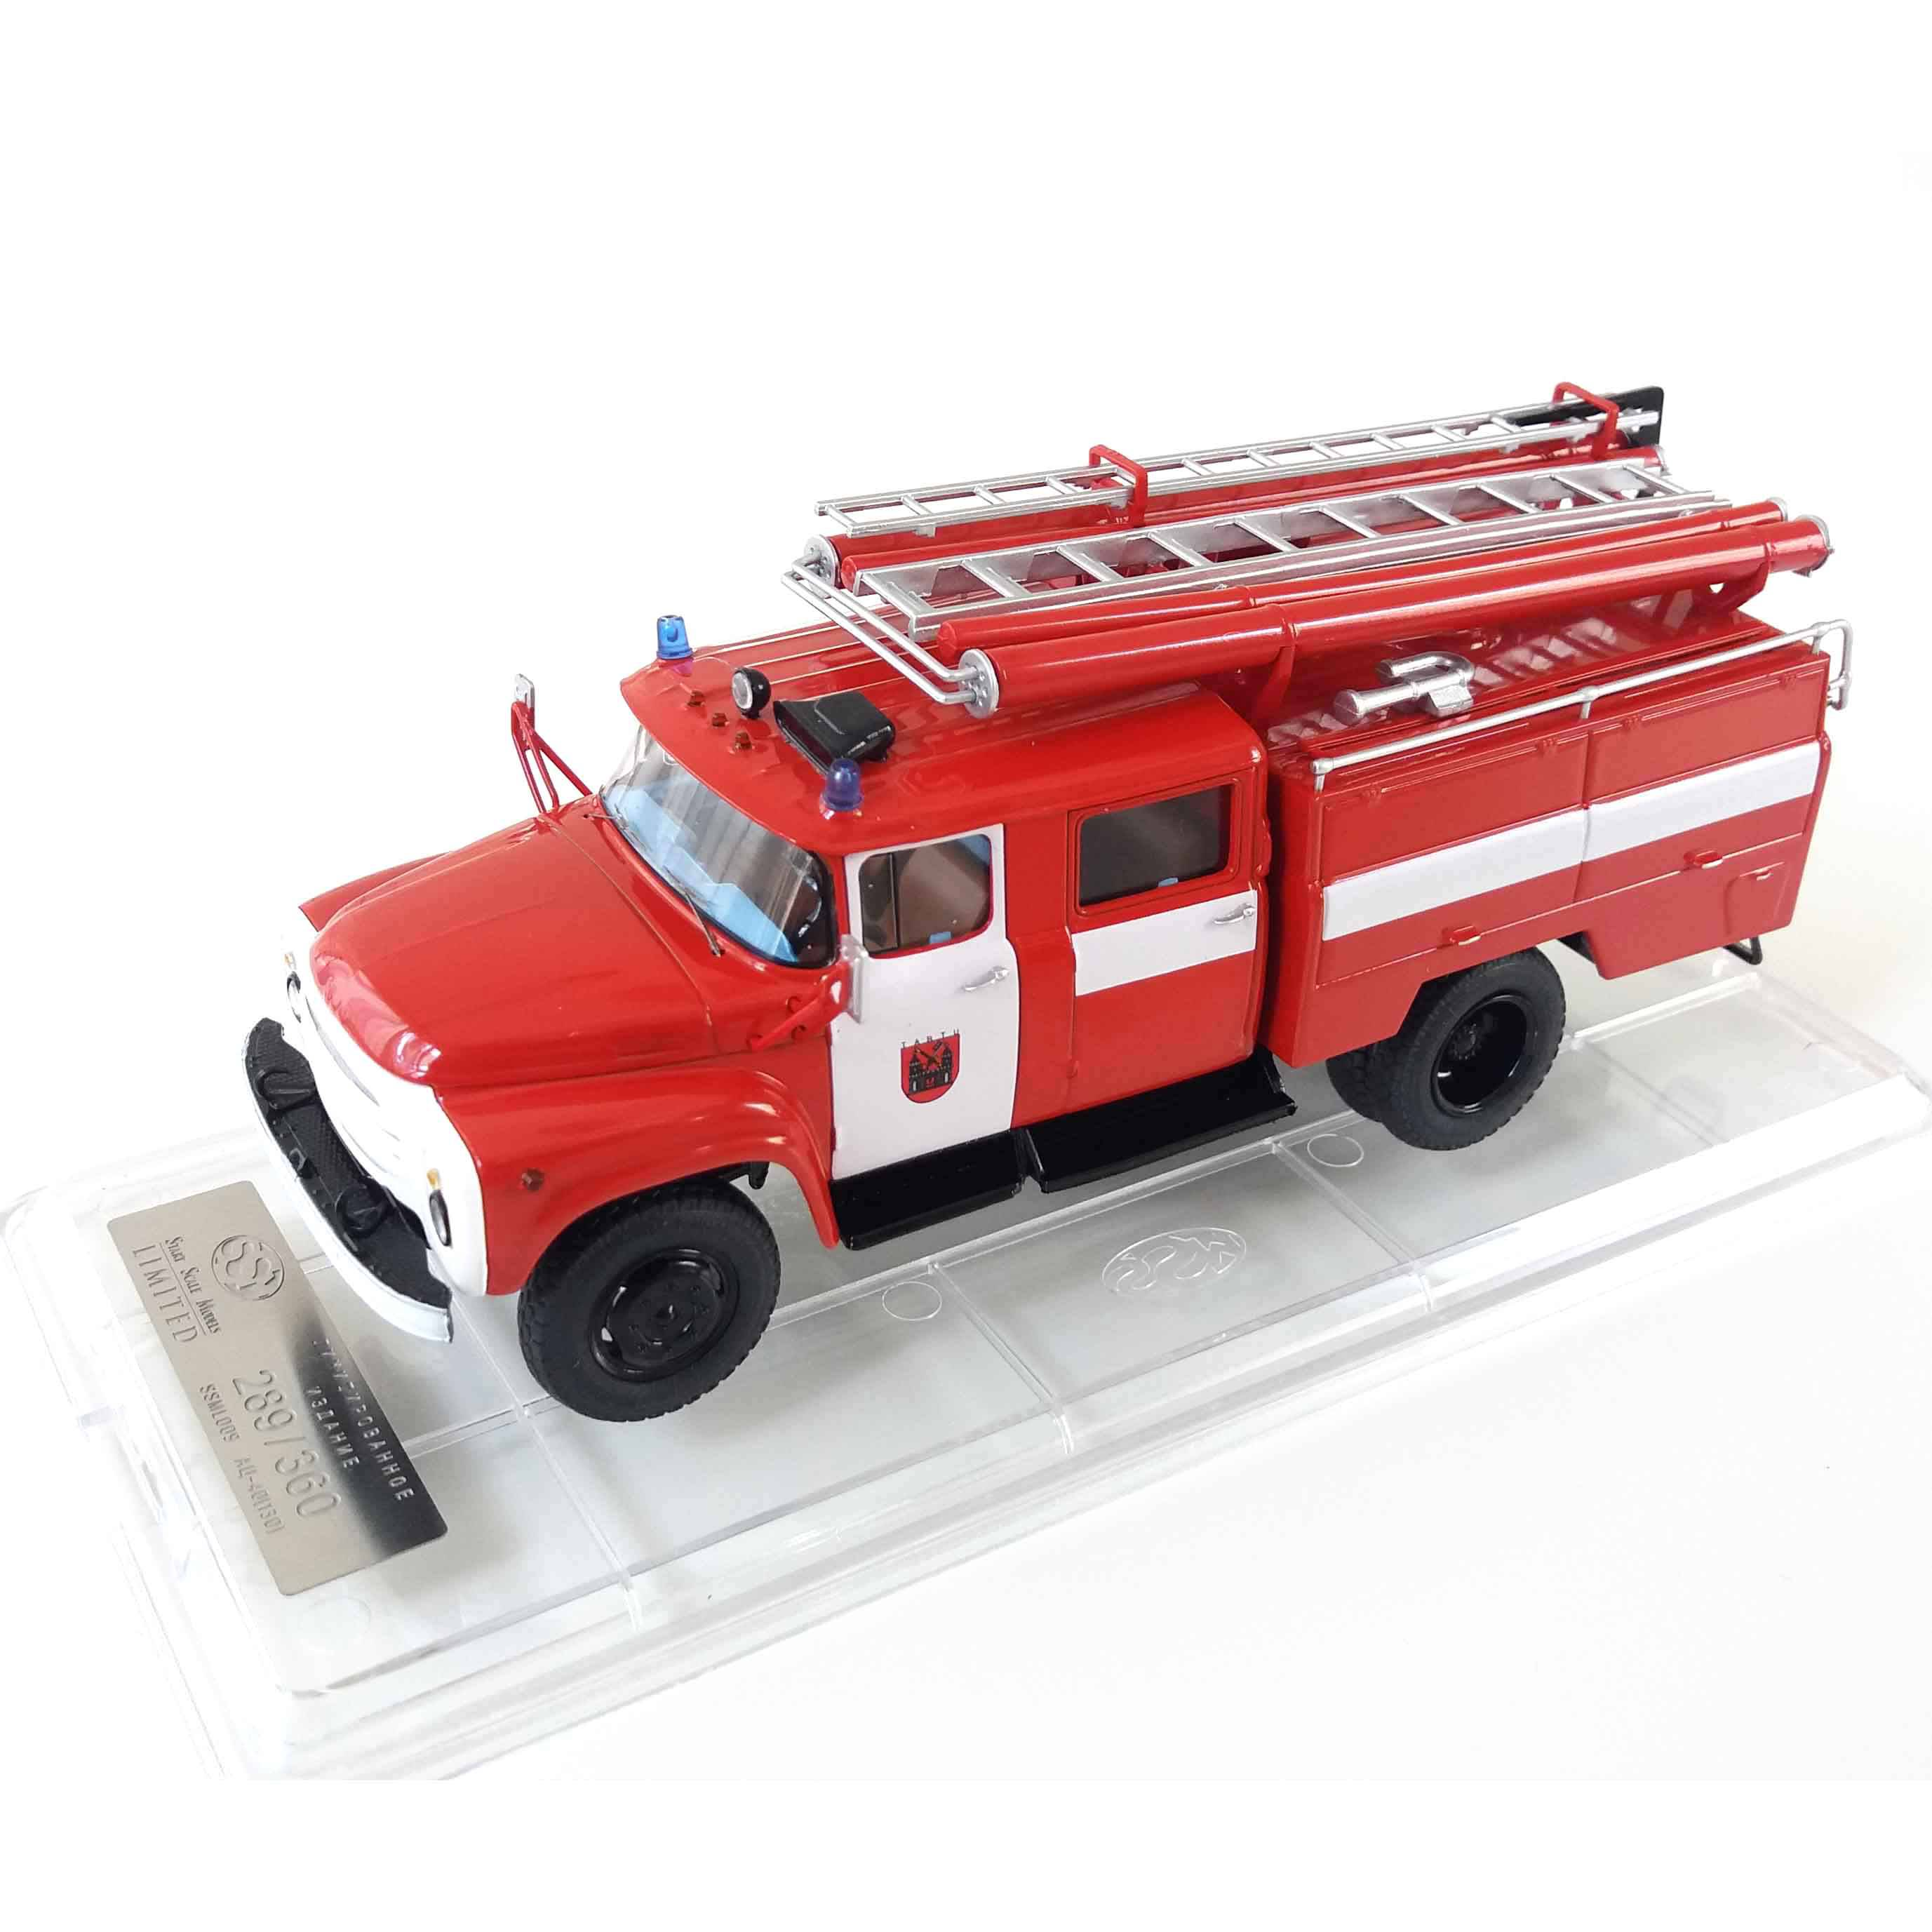 AC-40 (ZIL-131) TARTU - Start Scale Models-limited edition